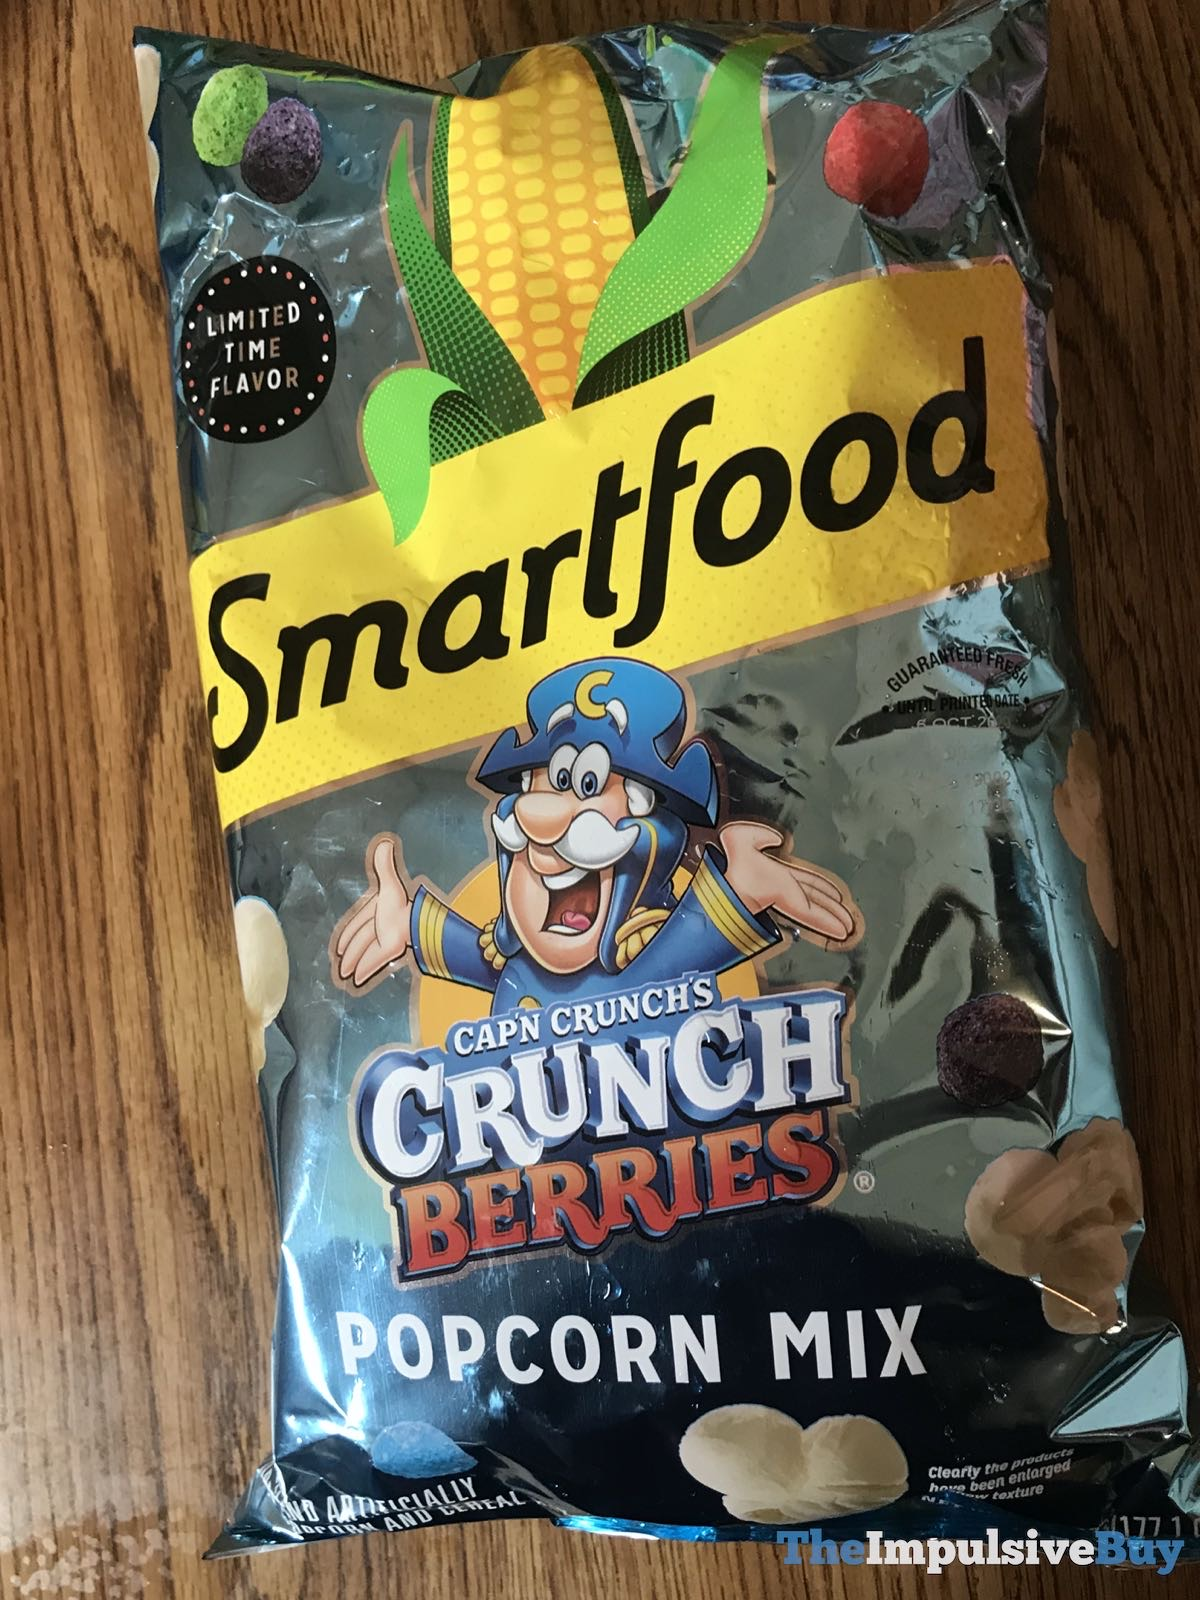 Spotted Smartfood Cap N Crunch S Crunch Berries Popcorn Mix The Impulsive Buy You'd need to walk 36 minutes to burn 130 calories. crunch berries popcorn mix